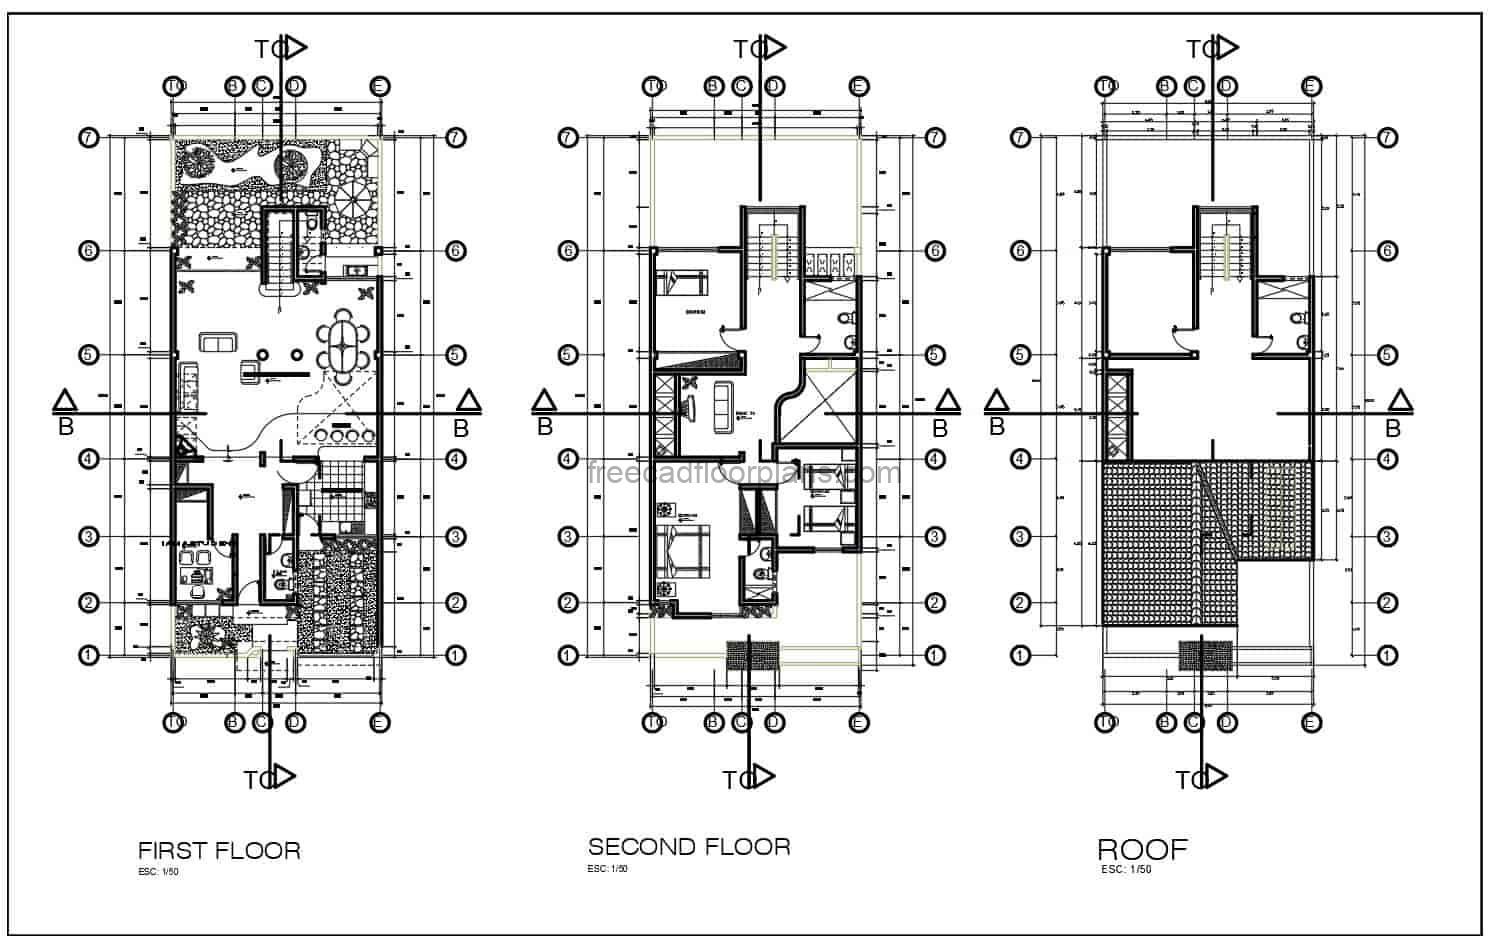 DWG floor plan of a two and a half level residence with three bedrooms in the private area of the second level, basic layout, living room, kitchen, dining room, front and back garden, indoor bar and laundry area. The roof area has a bedroom and bathroom, free downloadable plans in DWG format with dimensions and foundation and floor plans.